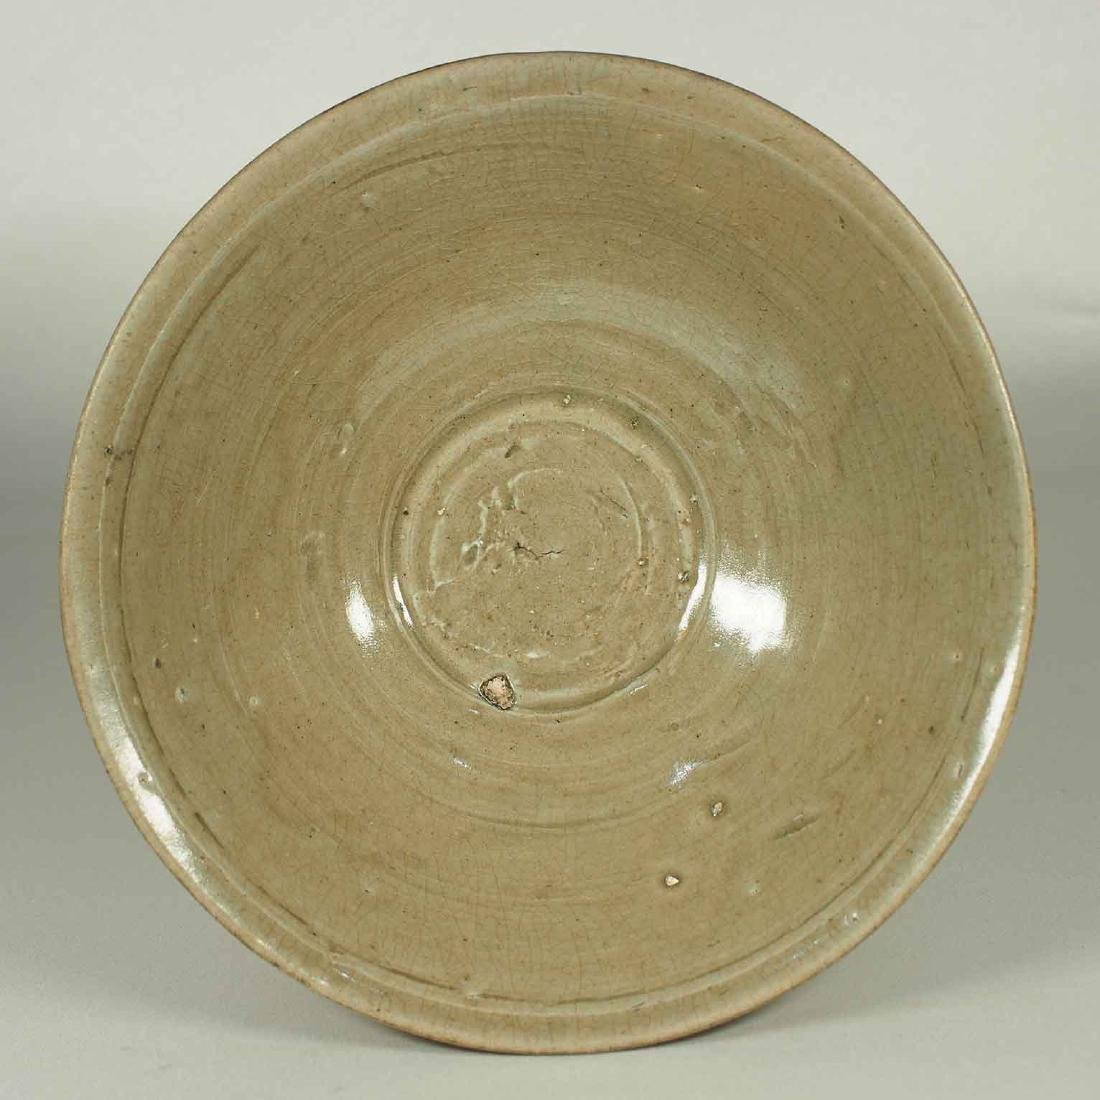 Yue Celadon Bowl, Song Dynasty